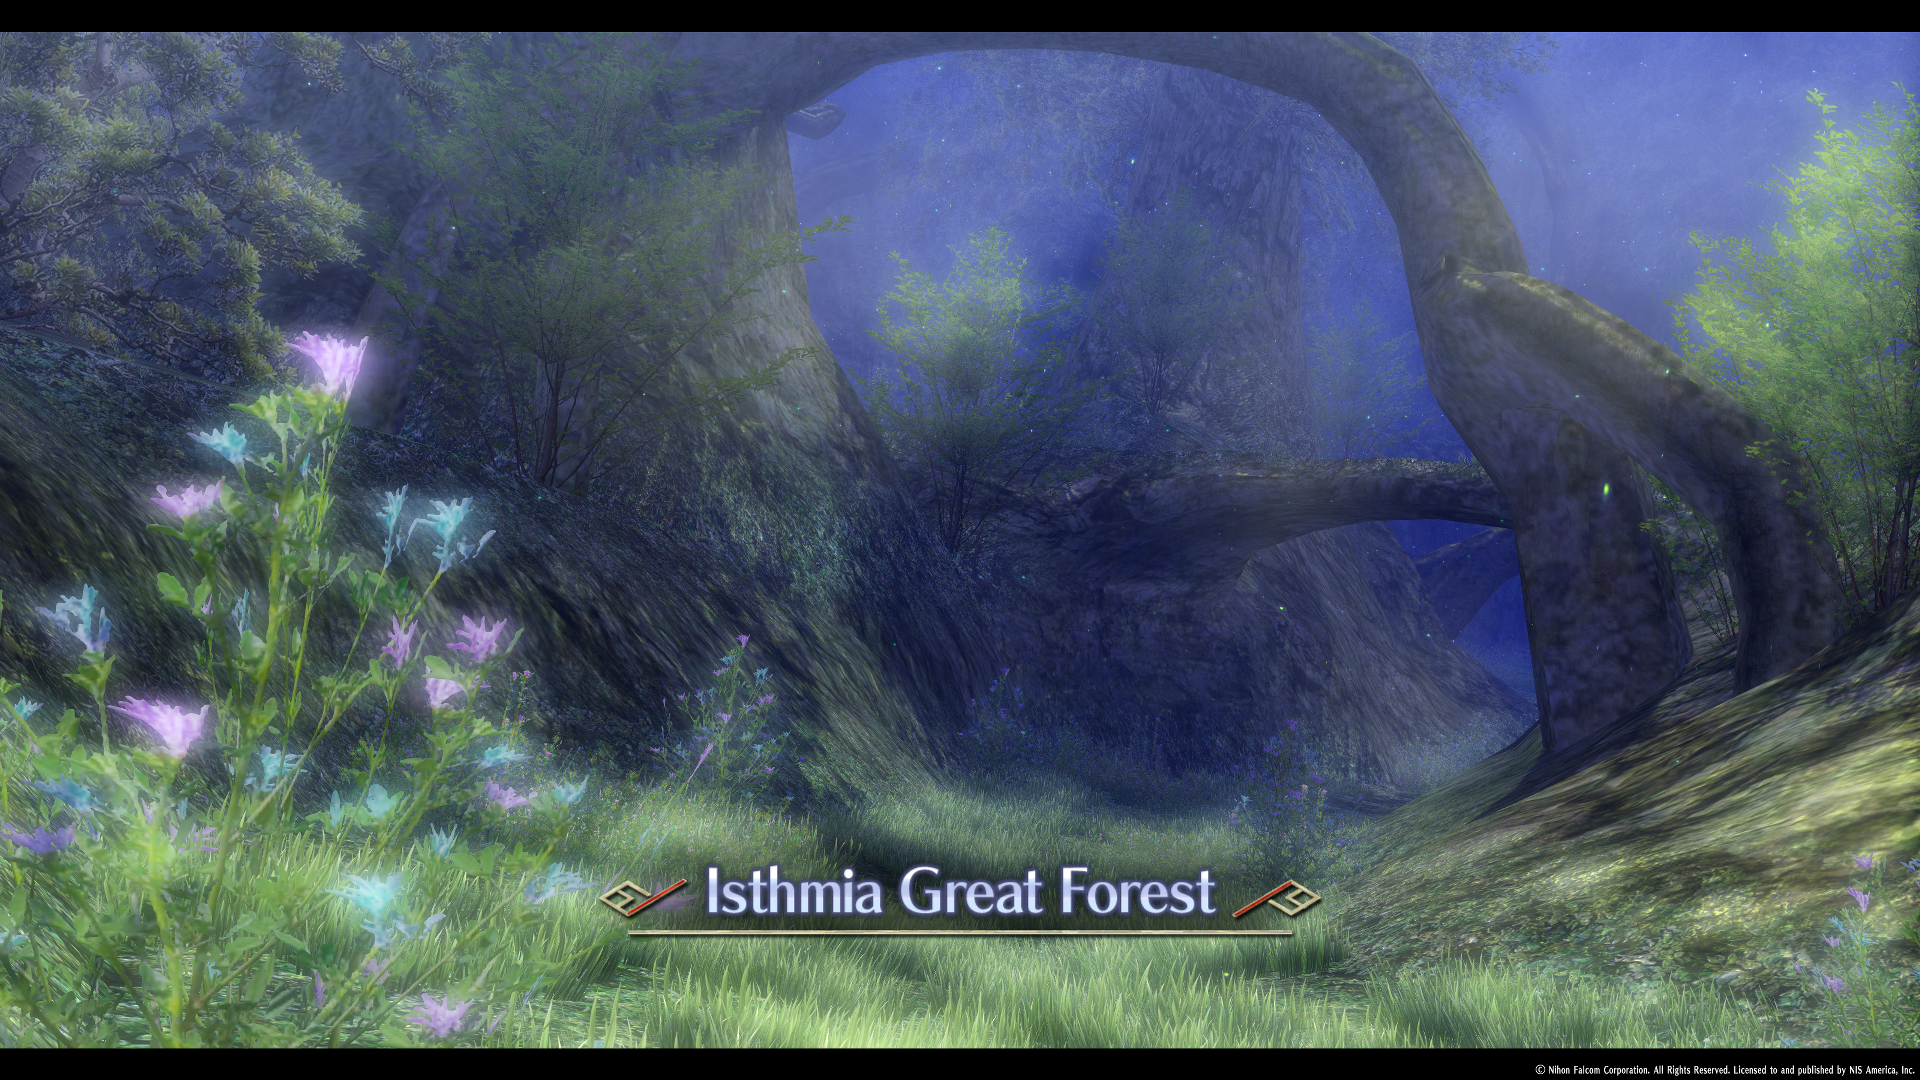 Isthmia Great Forest